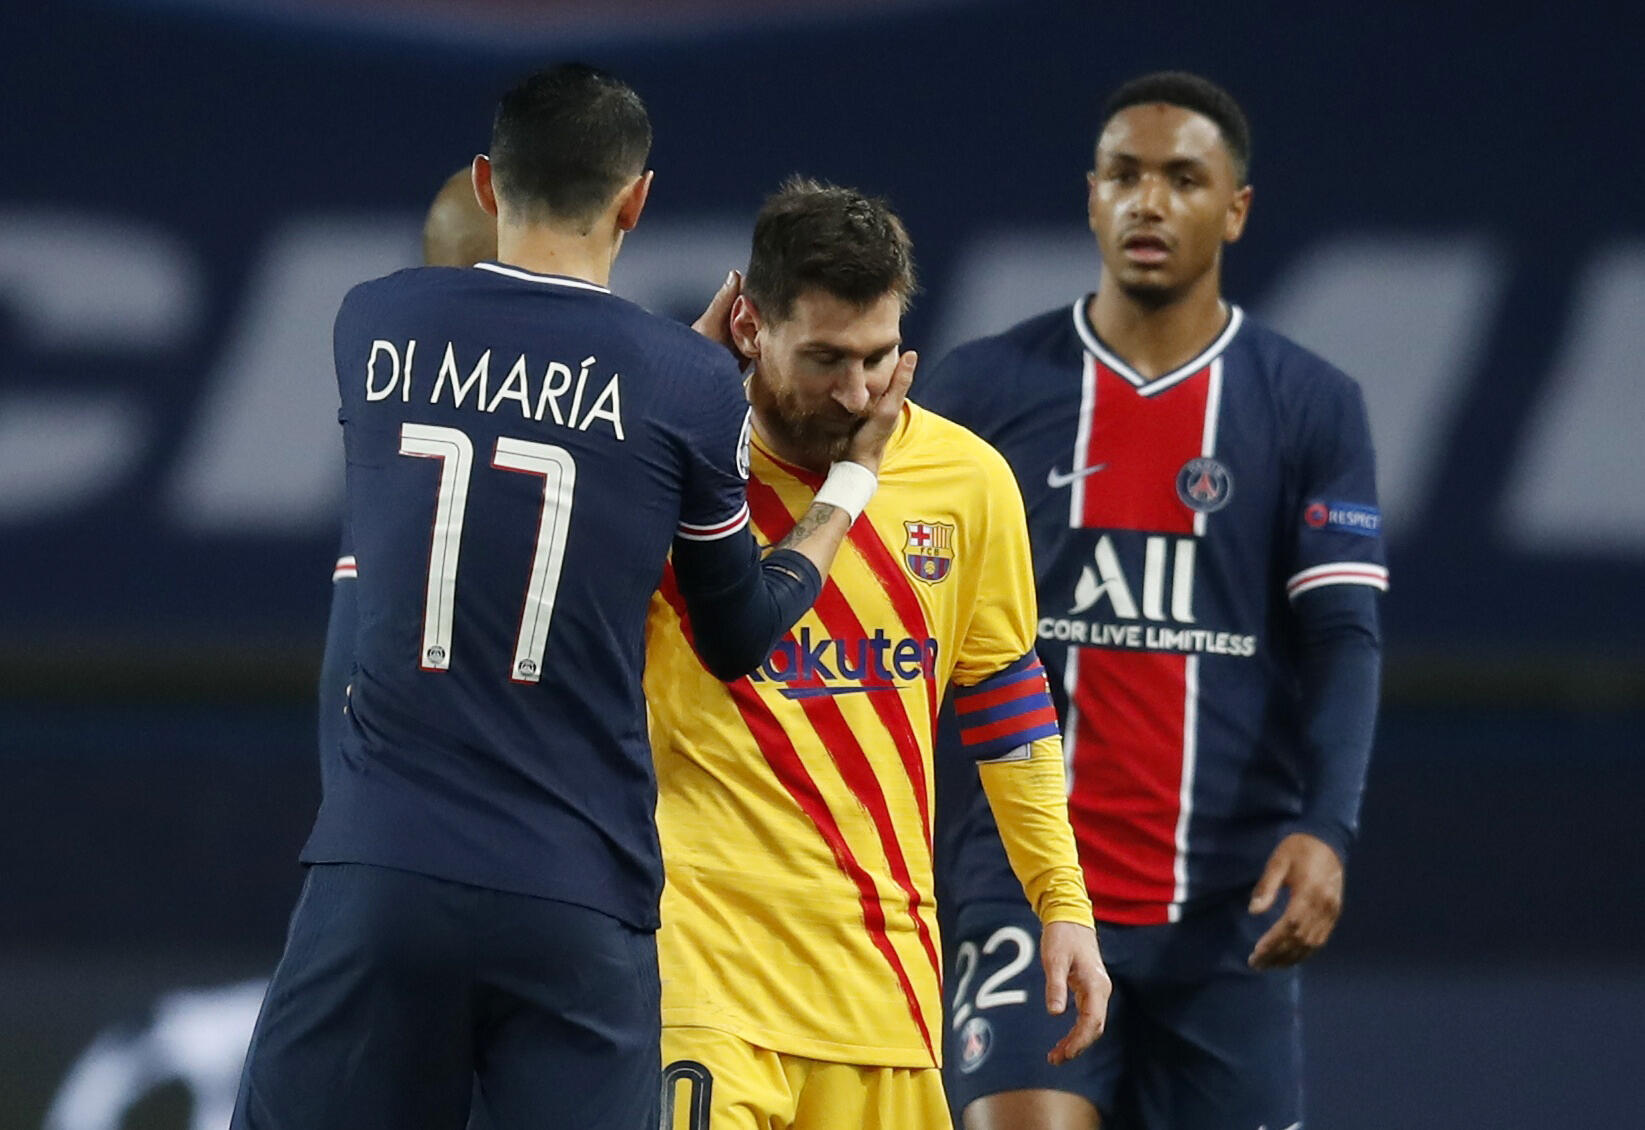 2021-03-10T215656Z_1778784059_UP1EH3A1OYWKK_RTRMADP_3_SOCCER-CHAMPIONS-PSG-FCB-REPORT